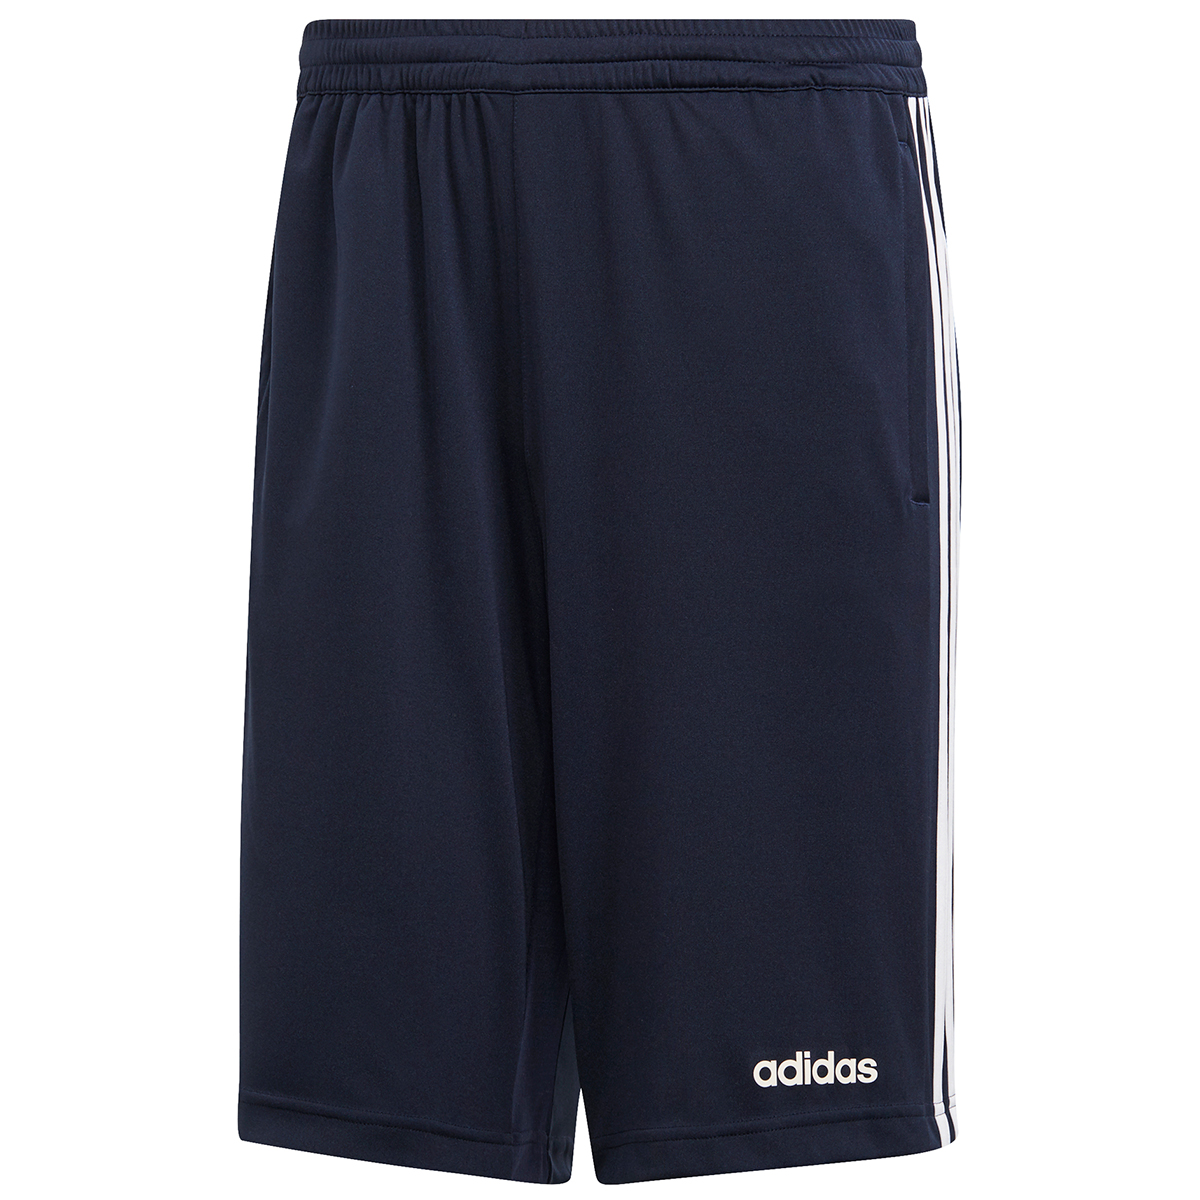 Adidas Men's Designed To Move Active Shorts - Blue, XXL